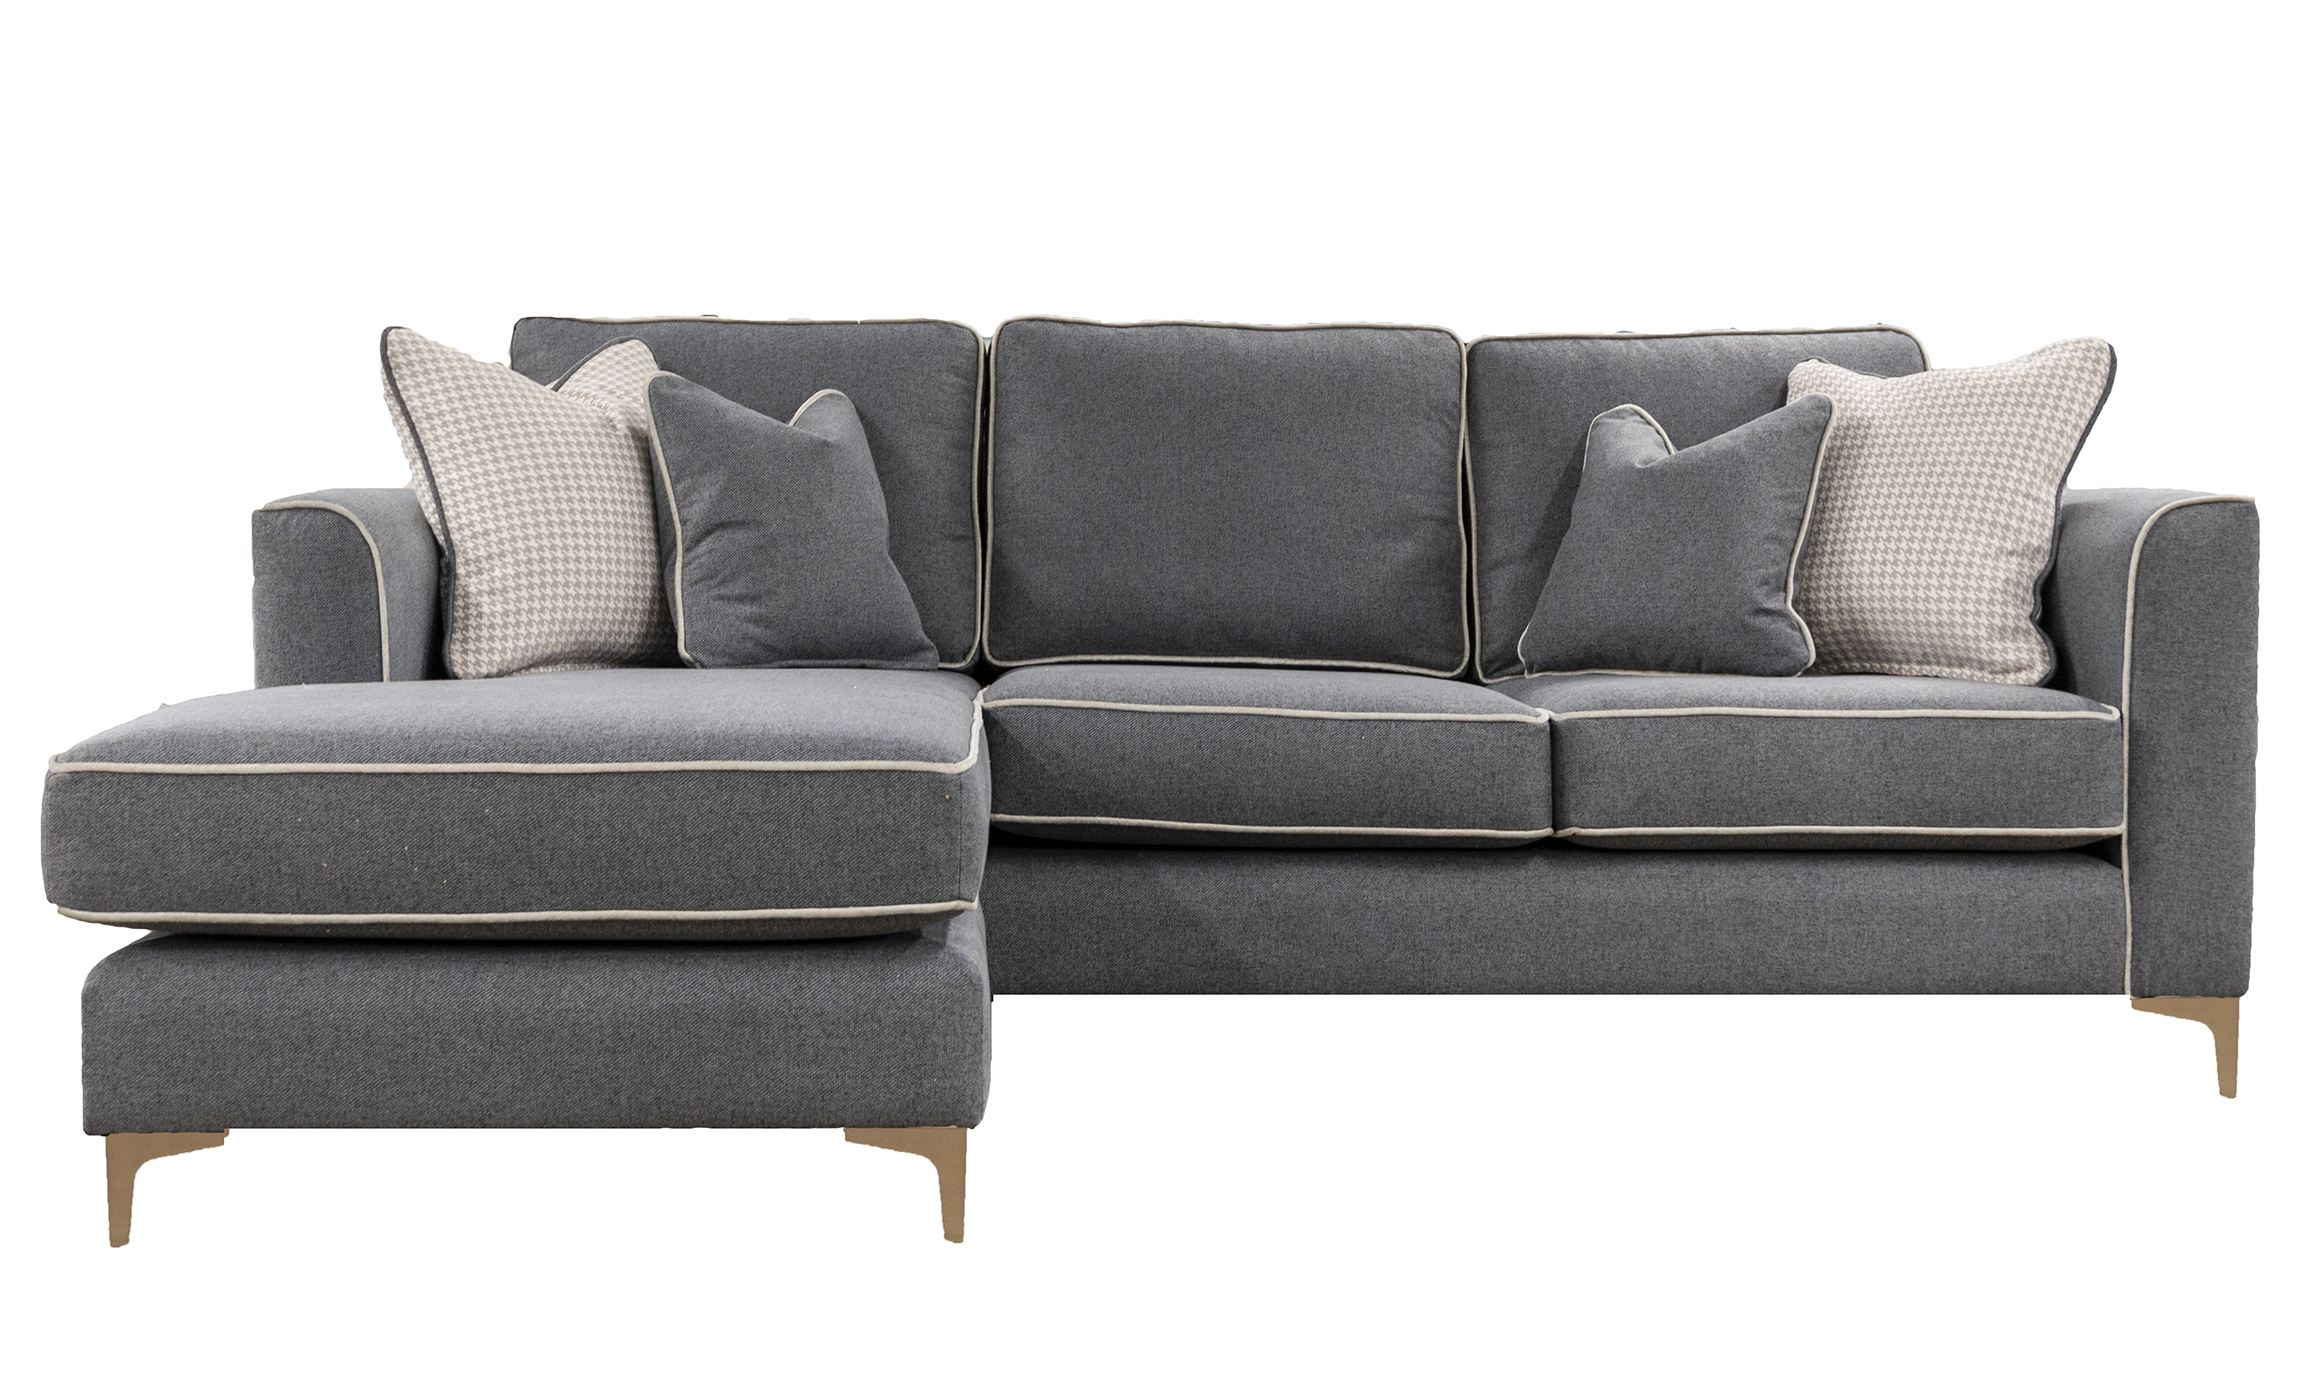 Nolan 3 Seater Chaise End Sofa in Soho Dark Grey, Silver Collection Fabric